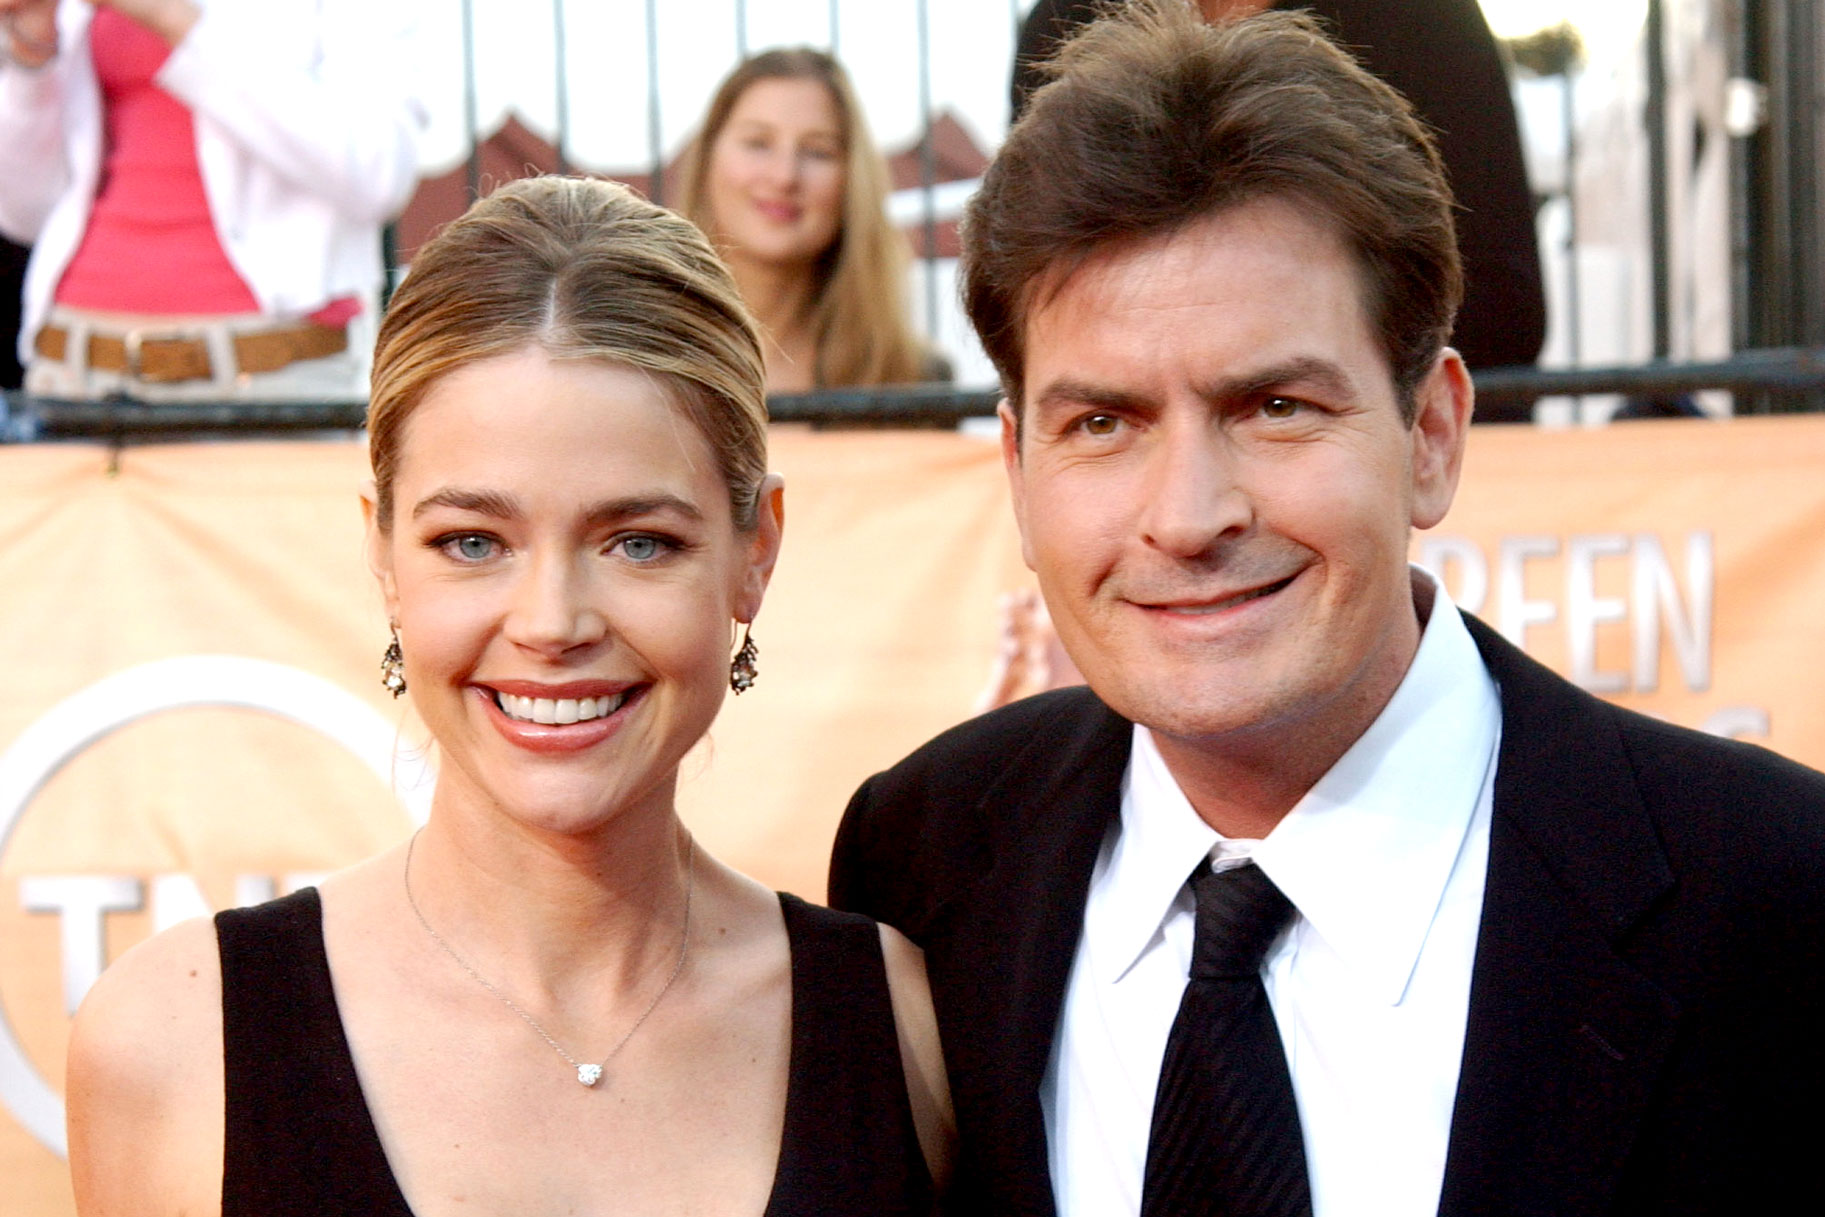 denise-richards-charlie-sheen-update.jpg